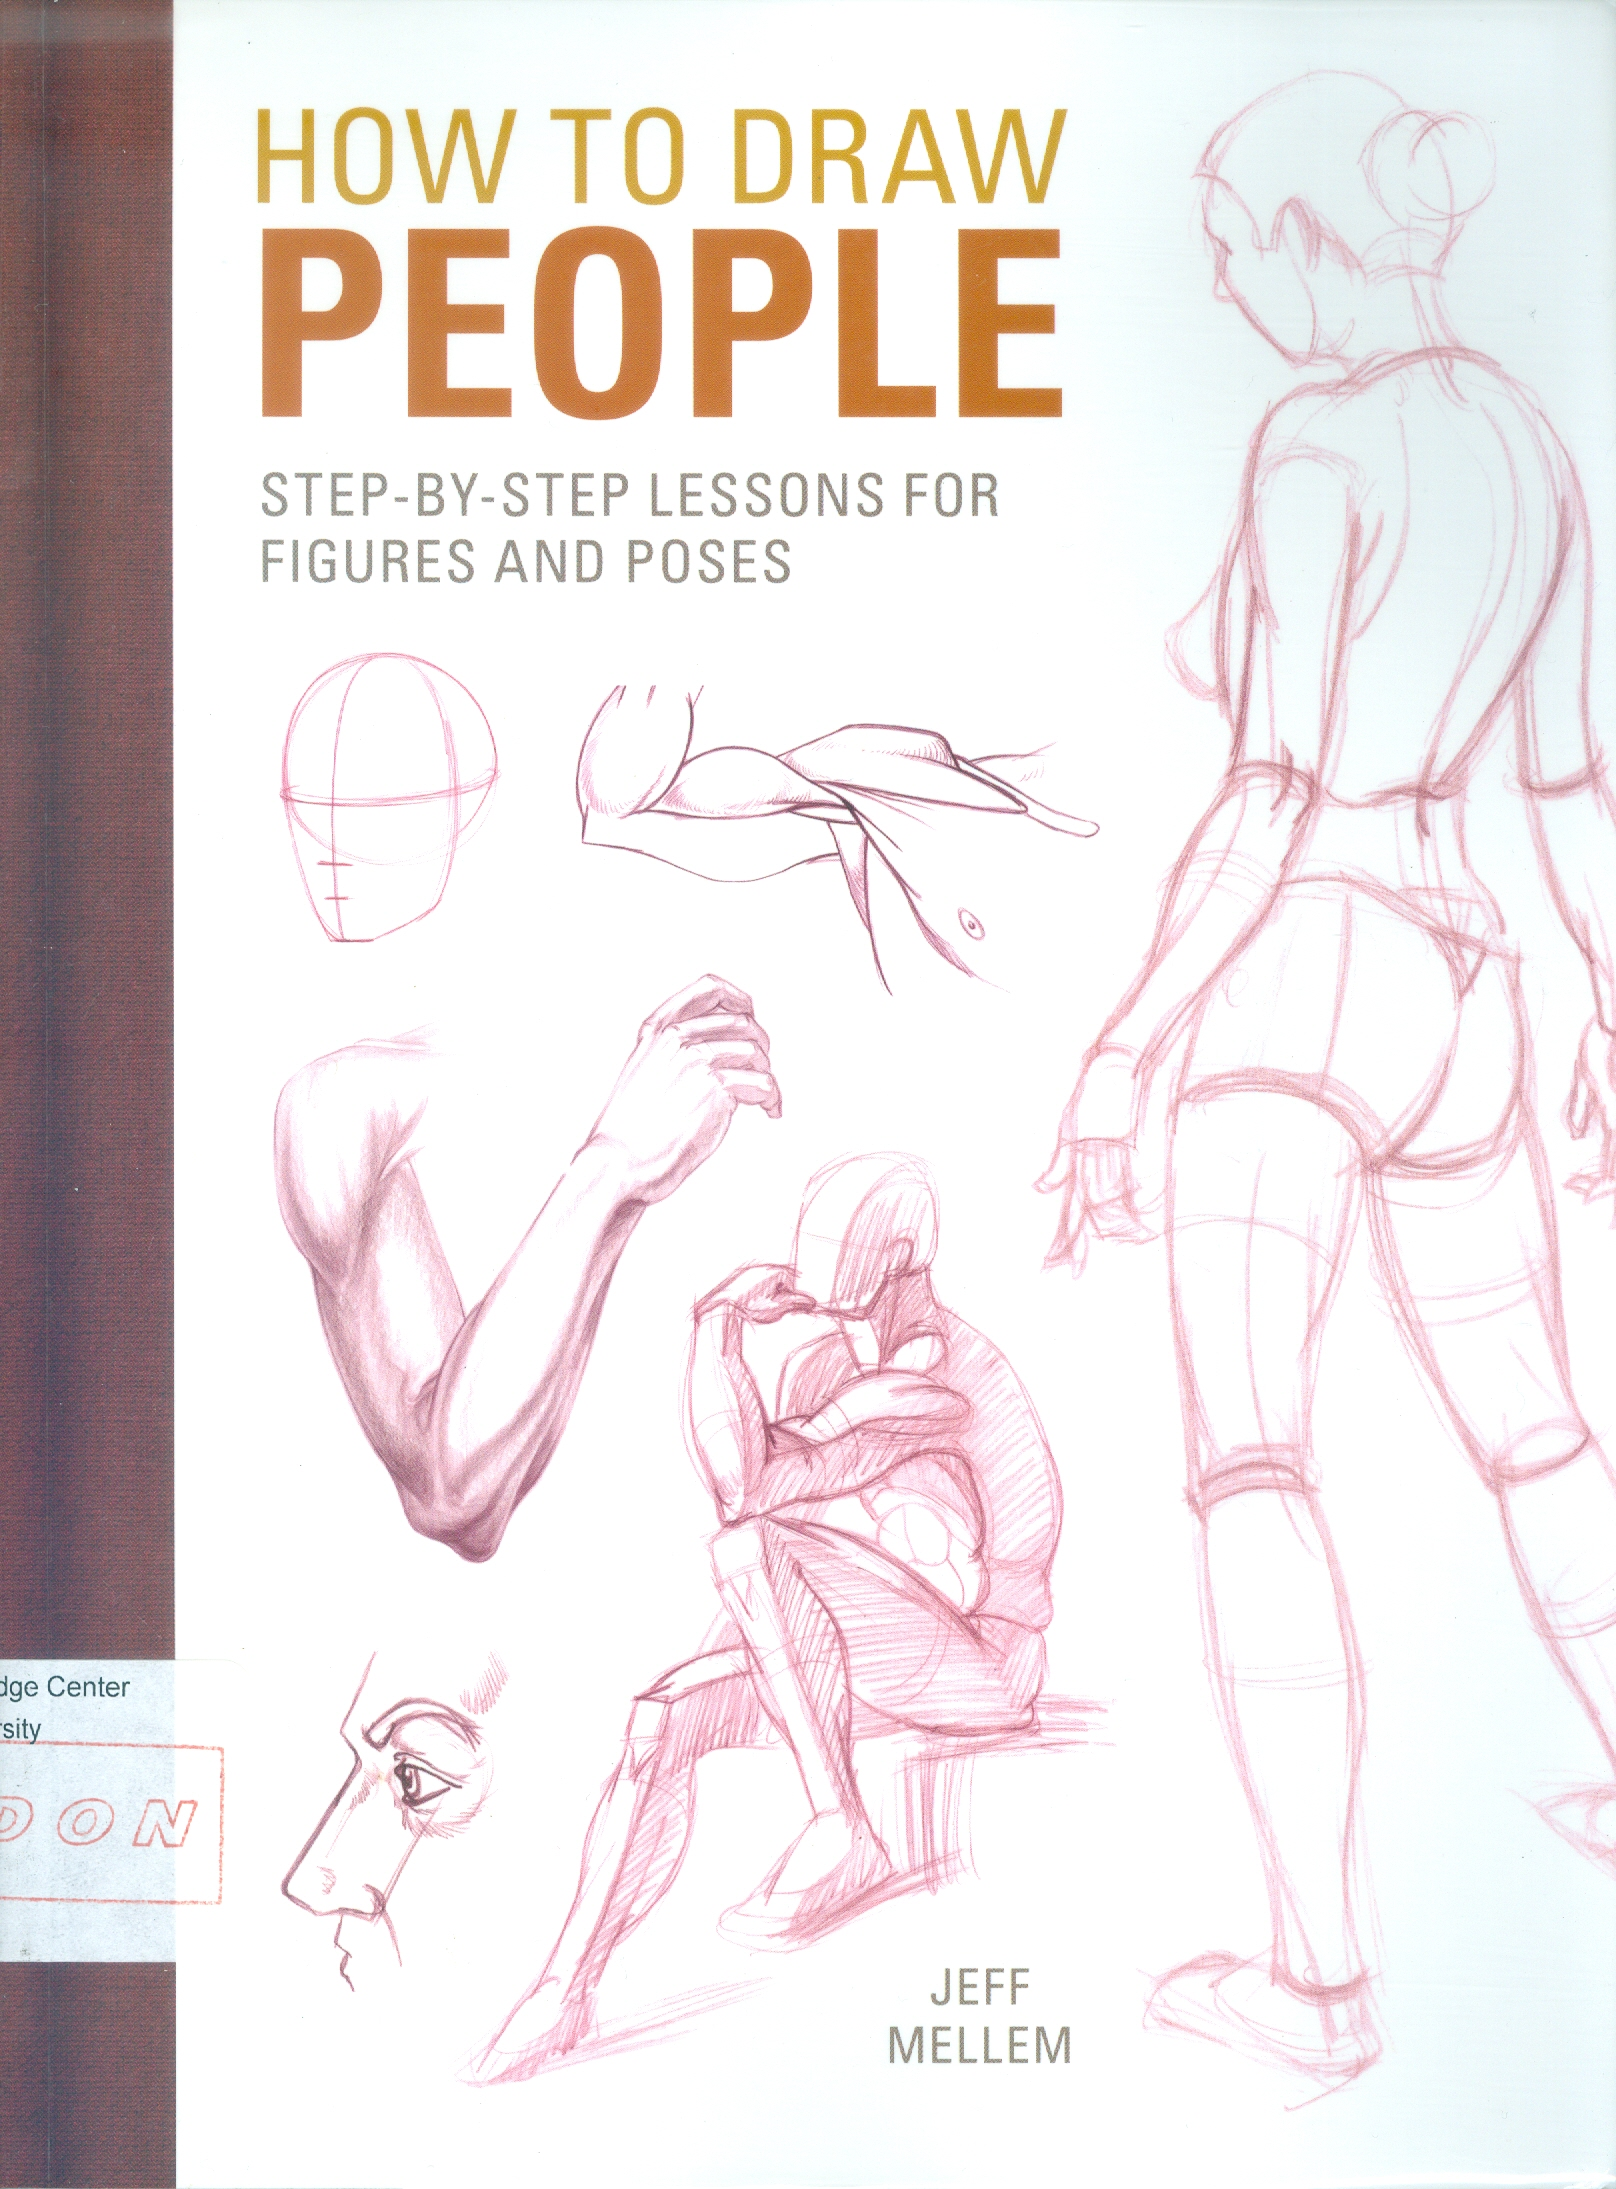 how to draw people0001.jpg